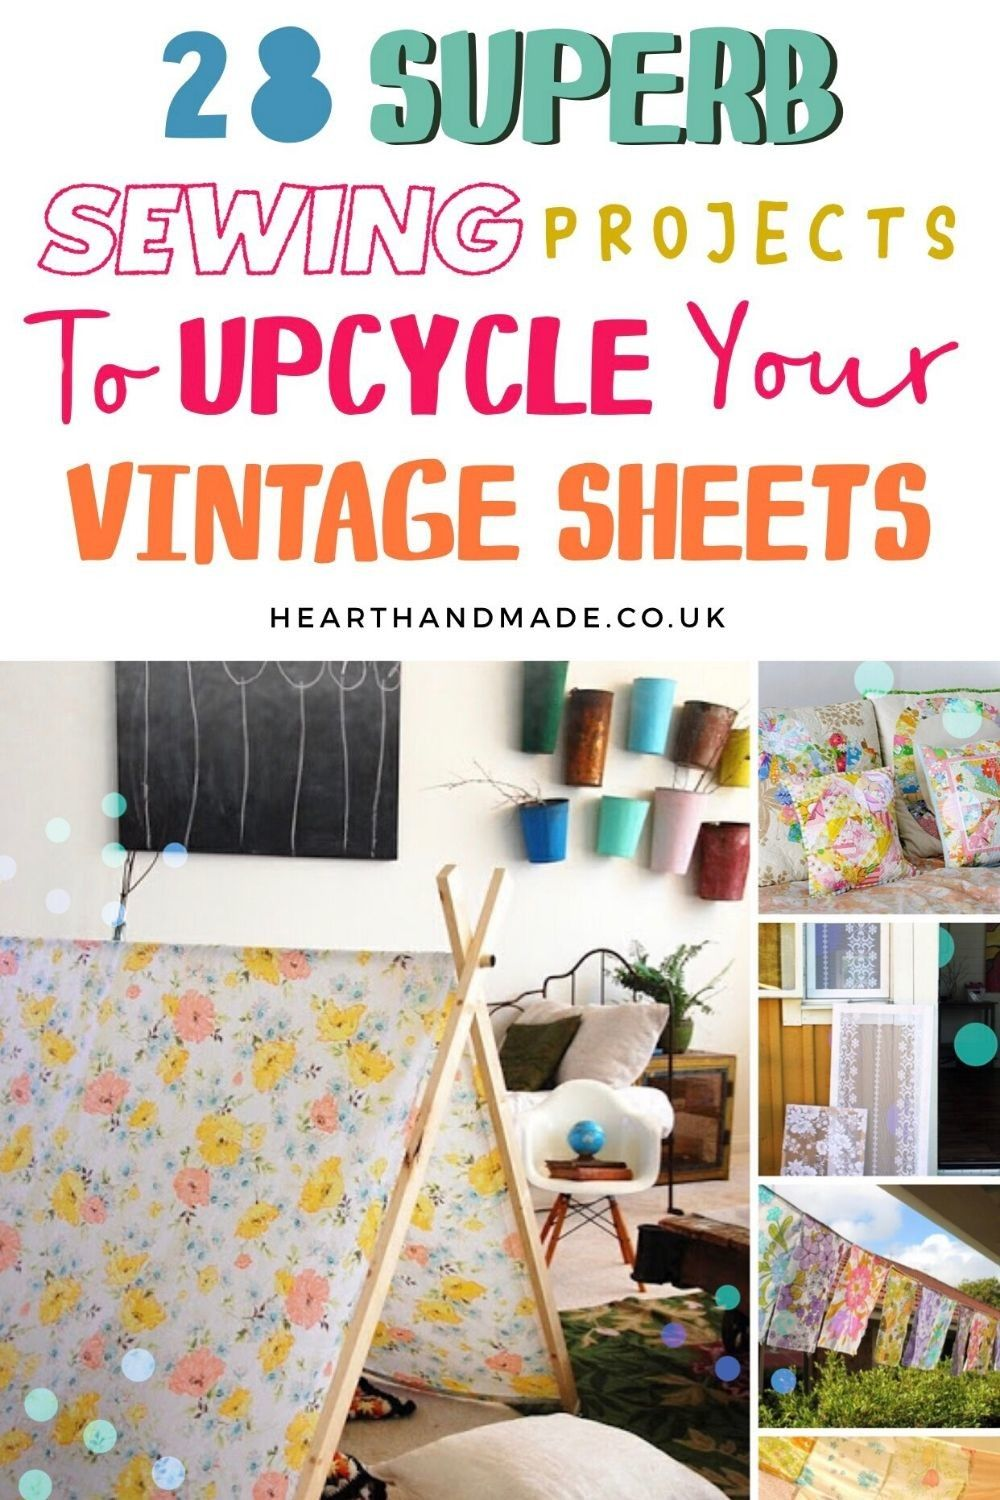 Have You Made Something Amazing With Vintage Sheets Vintage